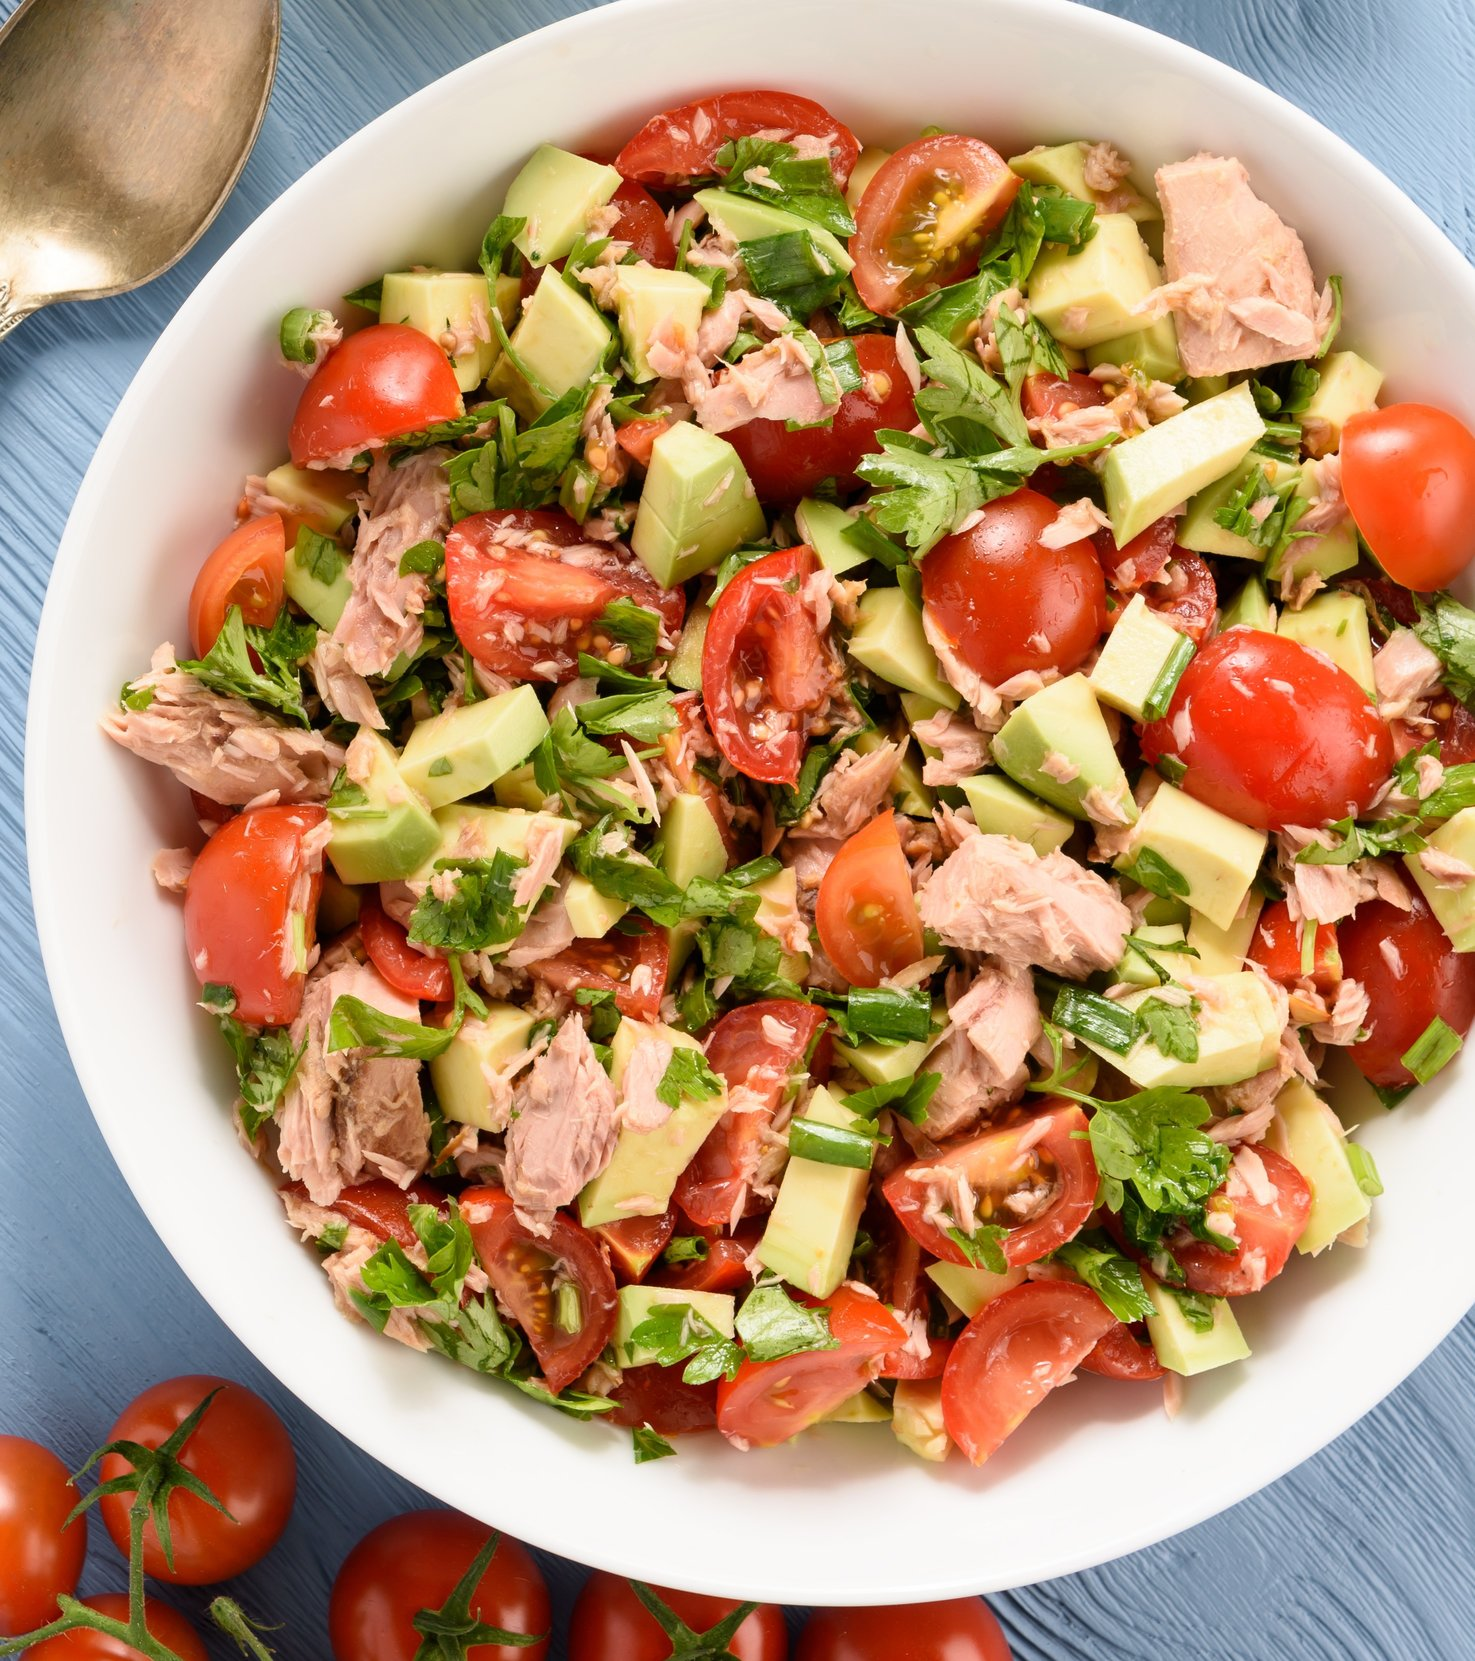 Healthy Lunch Lemony Avocado Tomato Tuna Salad